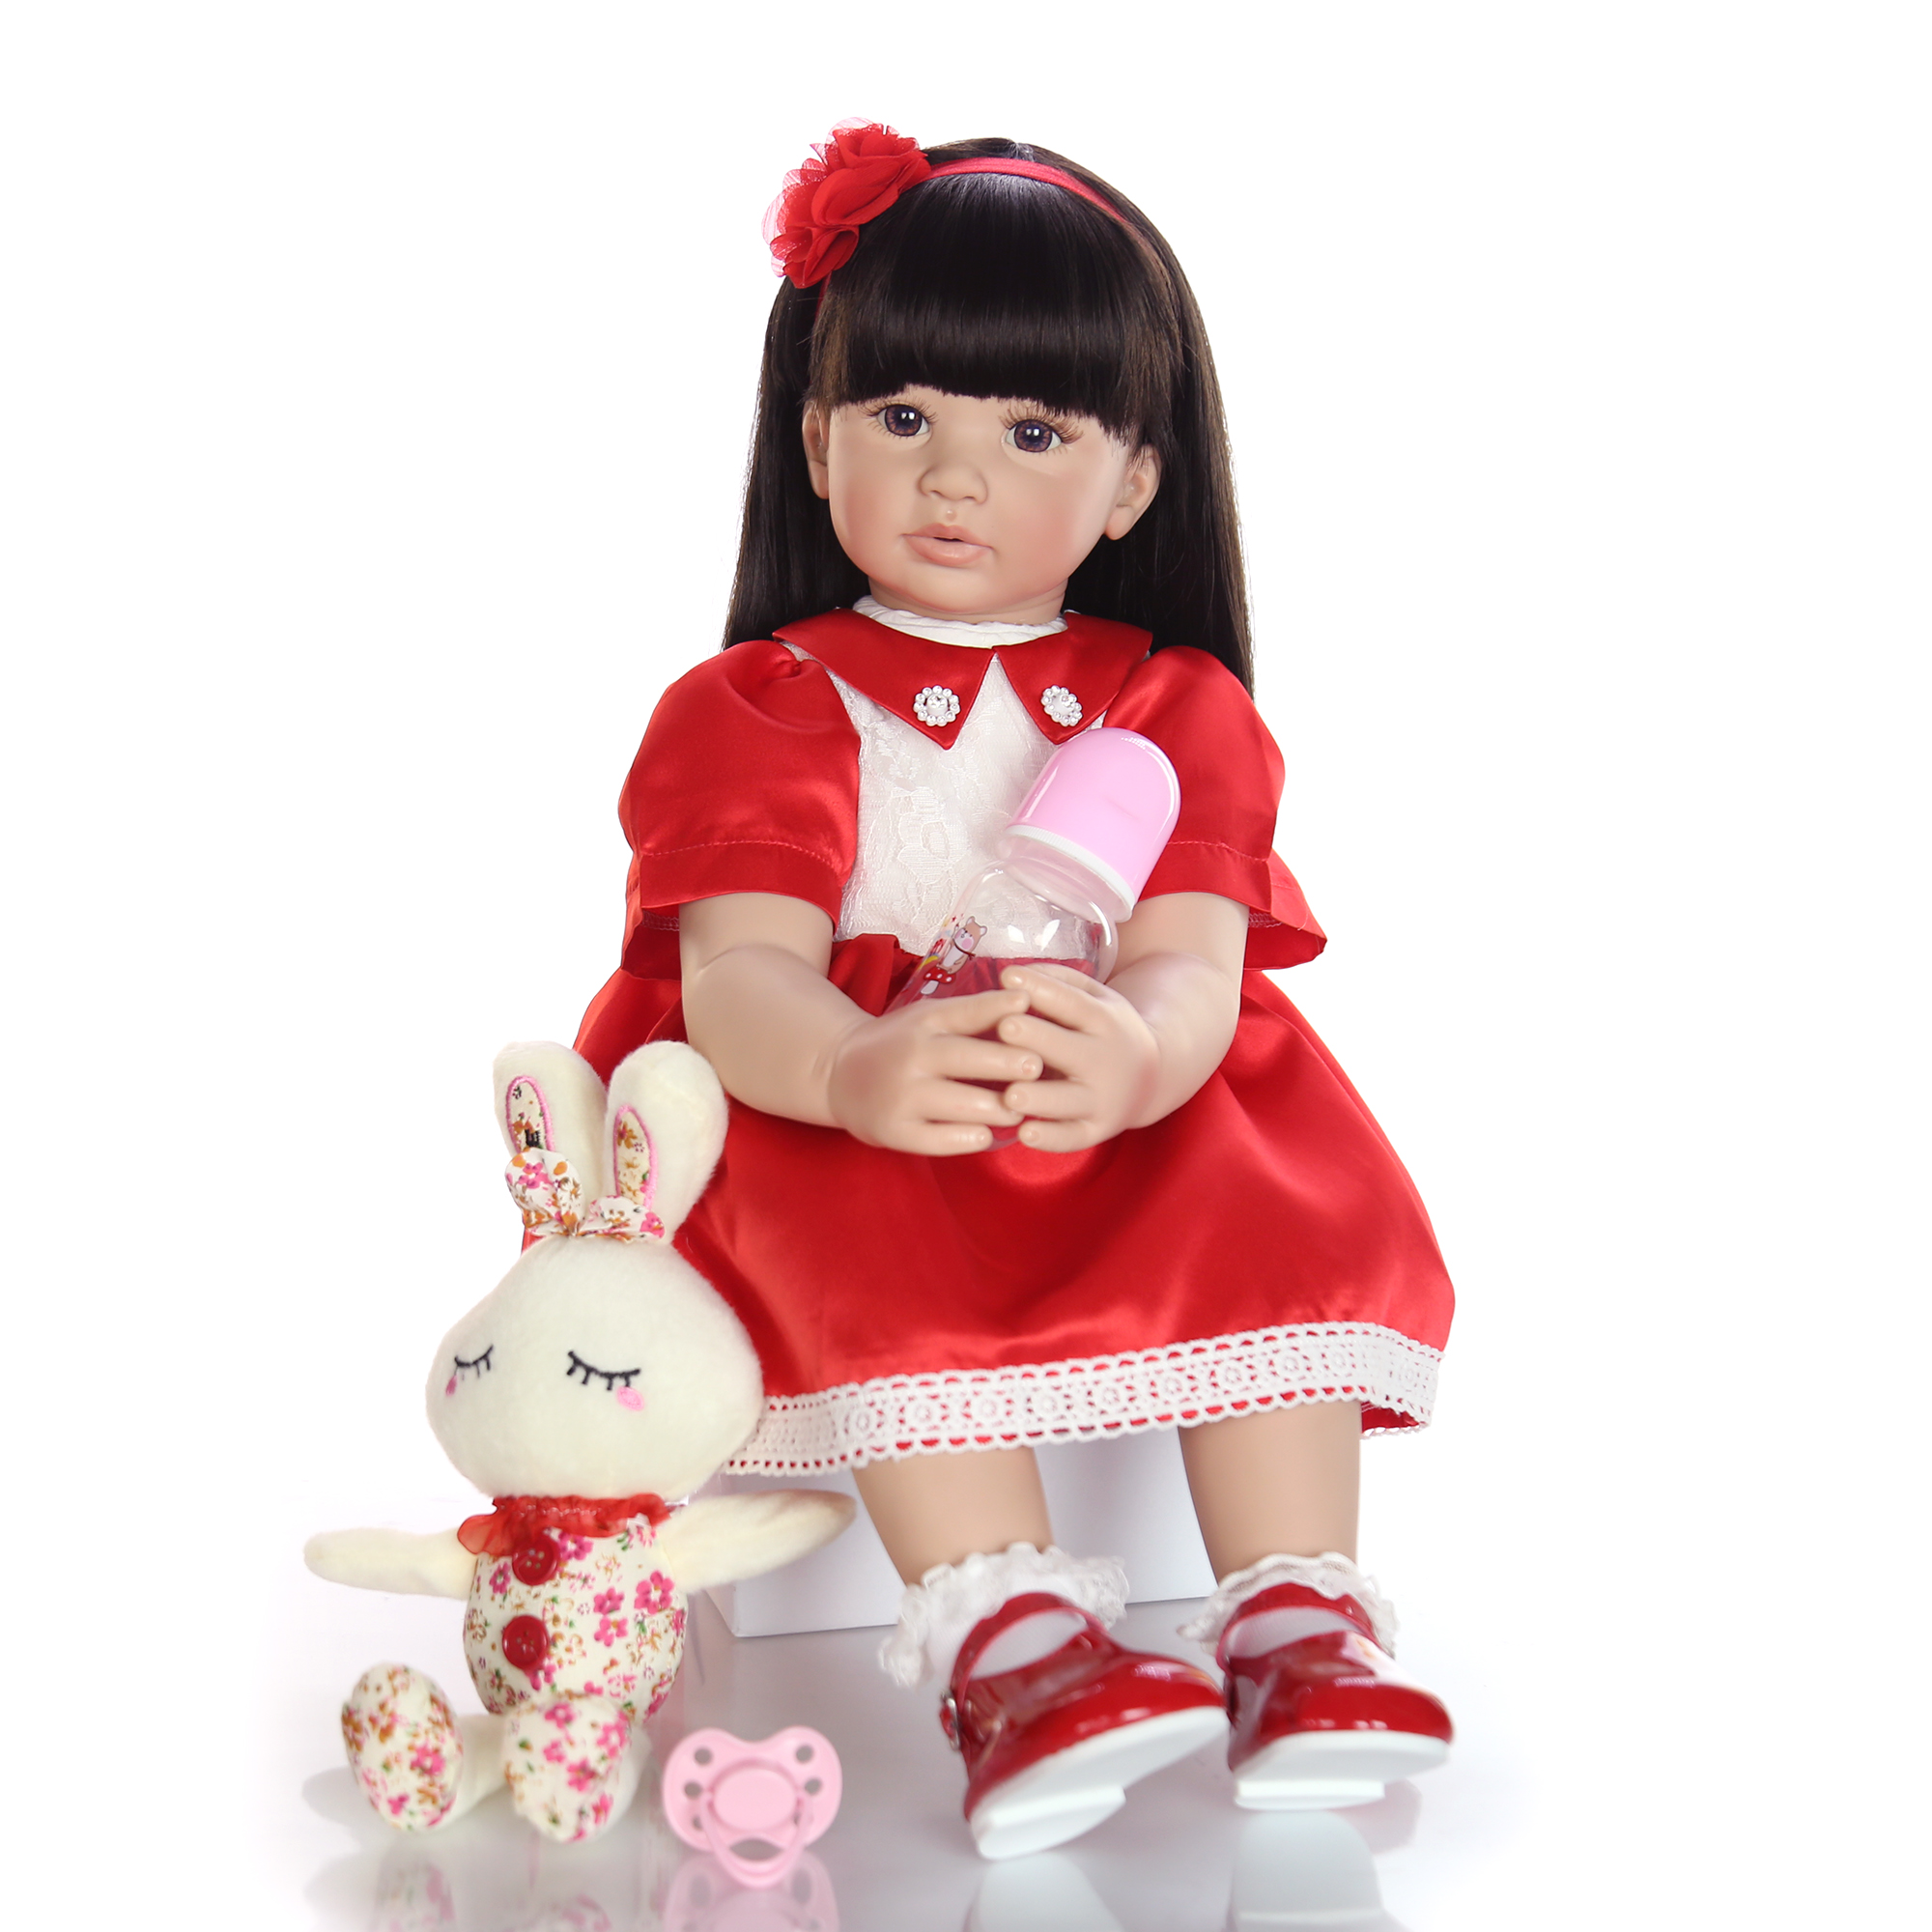 KEIUMI 60 cm Silicone Soft Reborn Dolls With Eyes Open 24 Inch Fashion Doll Baby Toy For Childrens Day Gifts Menina BrinquedoKEIUMI 60 cm Silicone Soft Reborn Dolls With Eyes Open 24 Inch Fashion Doll Baby Toy For Childrens Day Gifts Menina Brinquedo